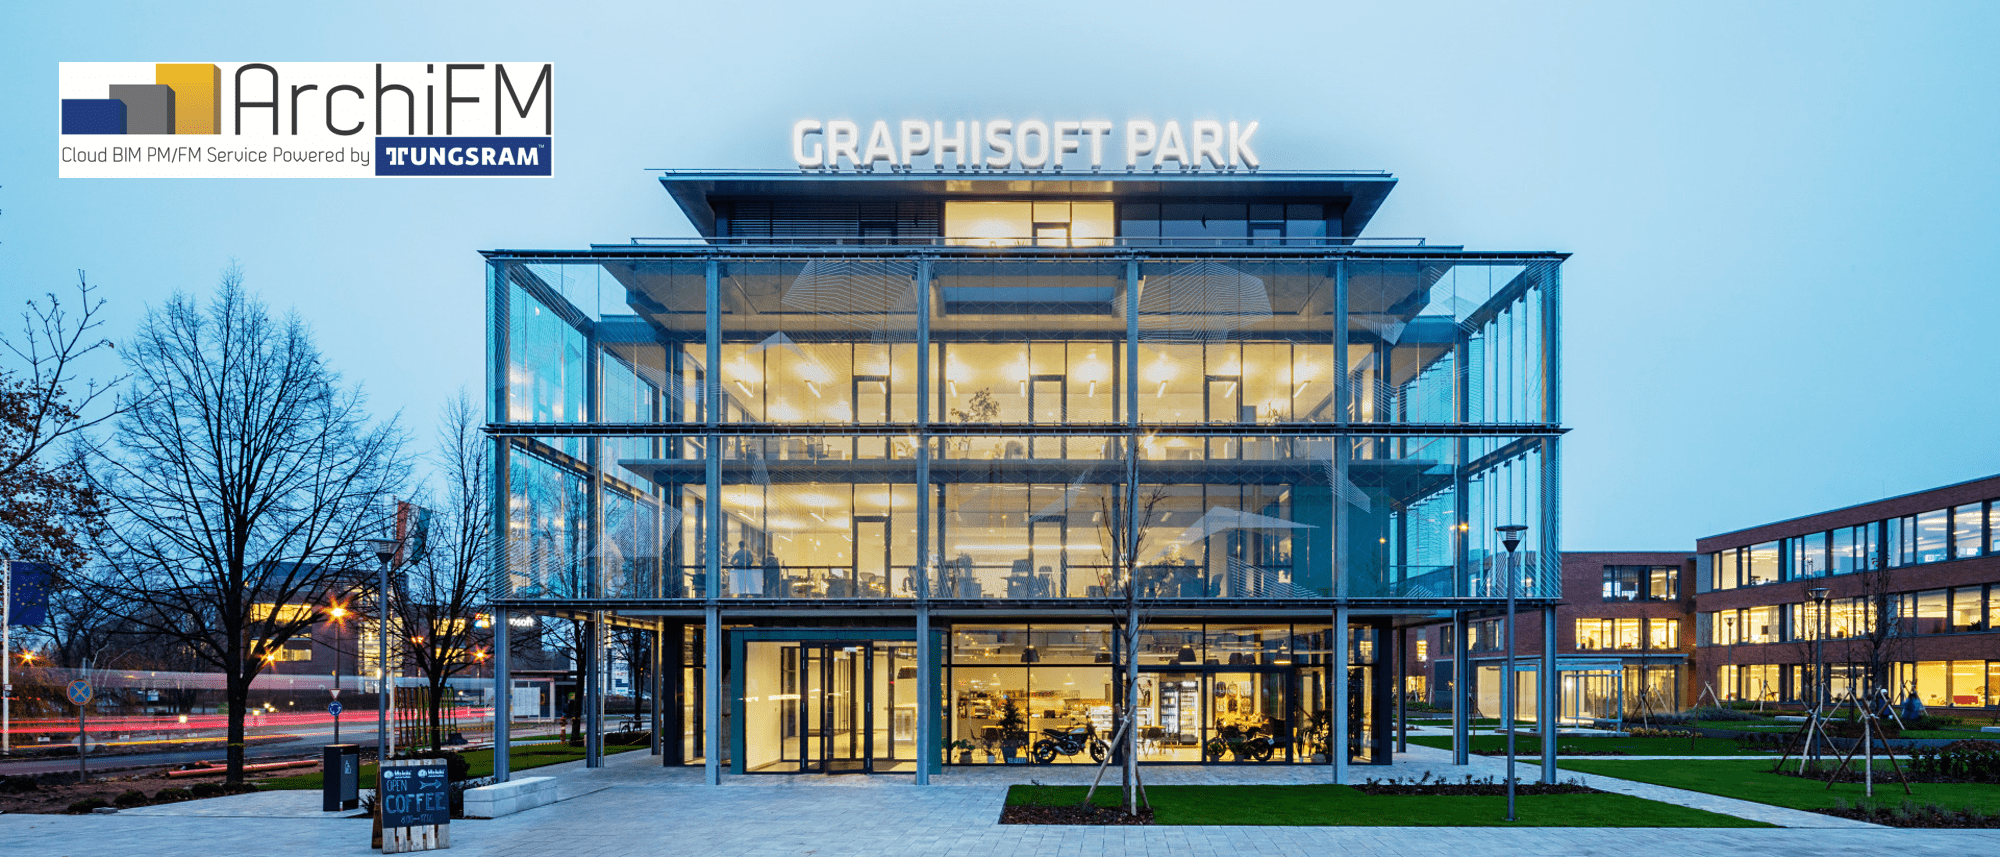 Tungsram Innovative Solutions has signed a contract with Graphisoft Park to modernize their existing real estate help desk system and expand its functionality.